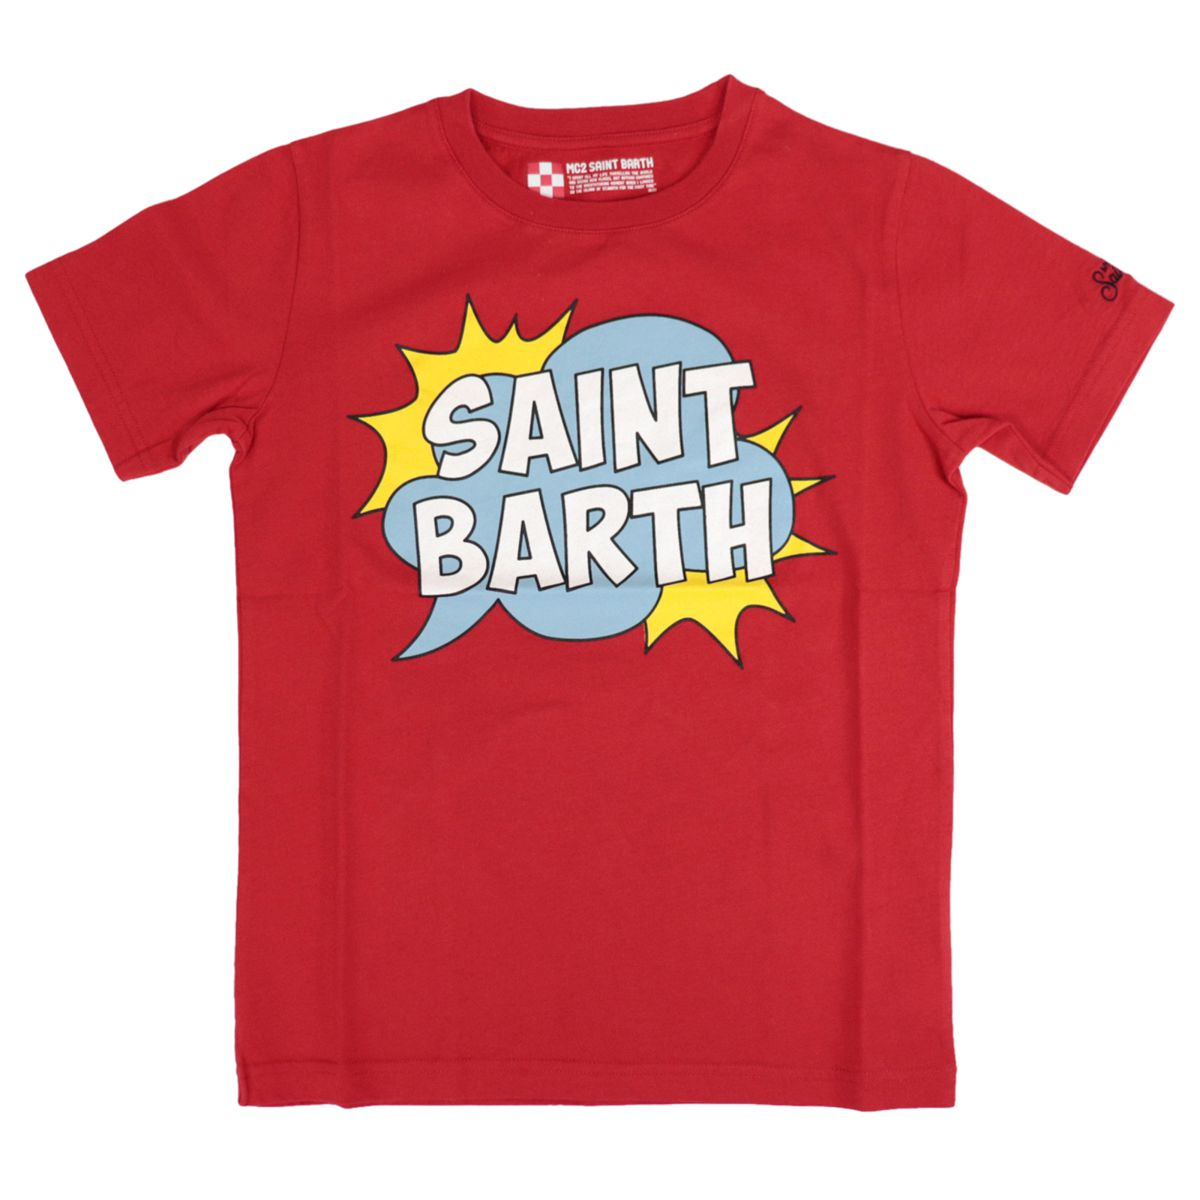 Cotton T-shirt with contrasting front logo print Red MC2 Saint Barth